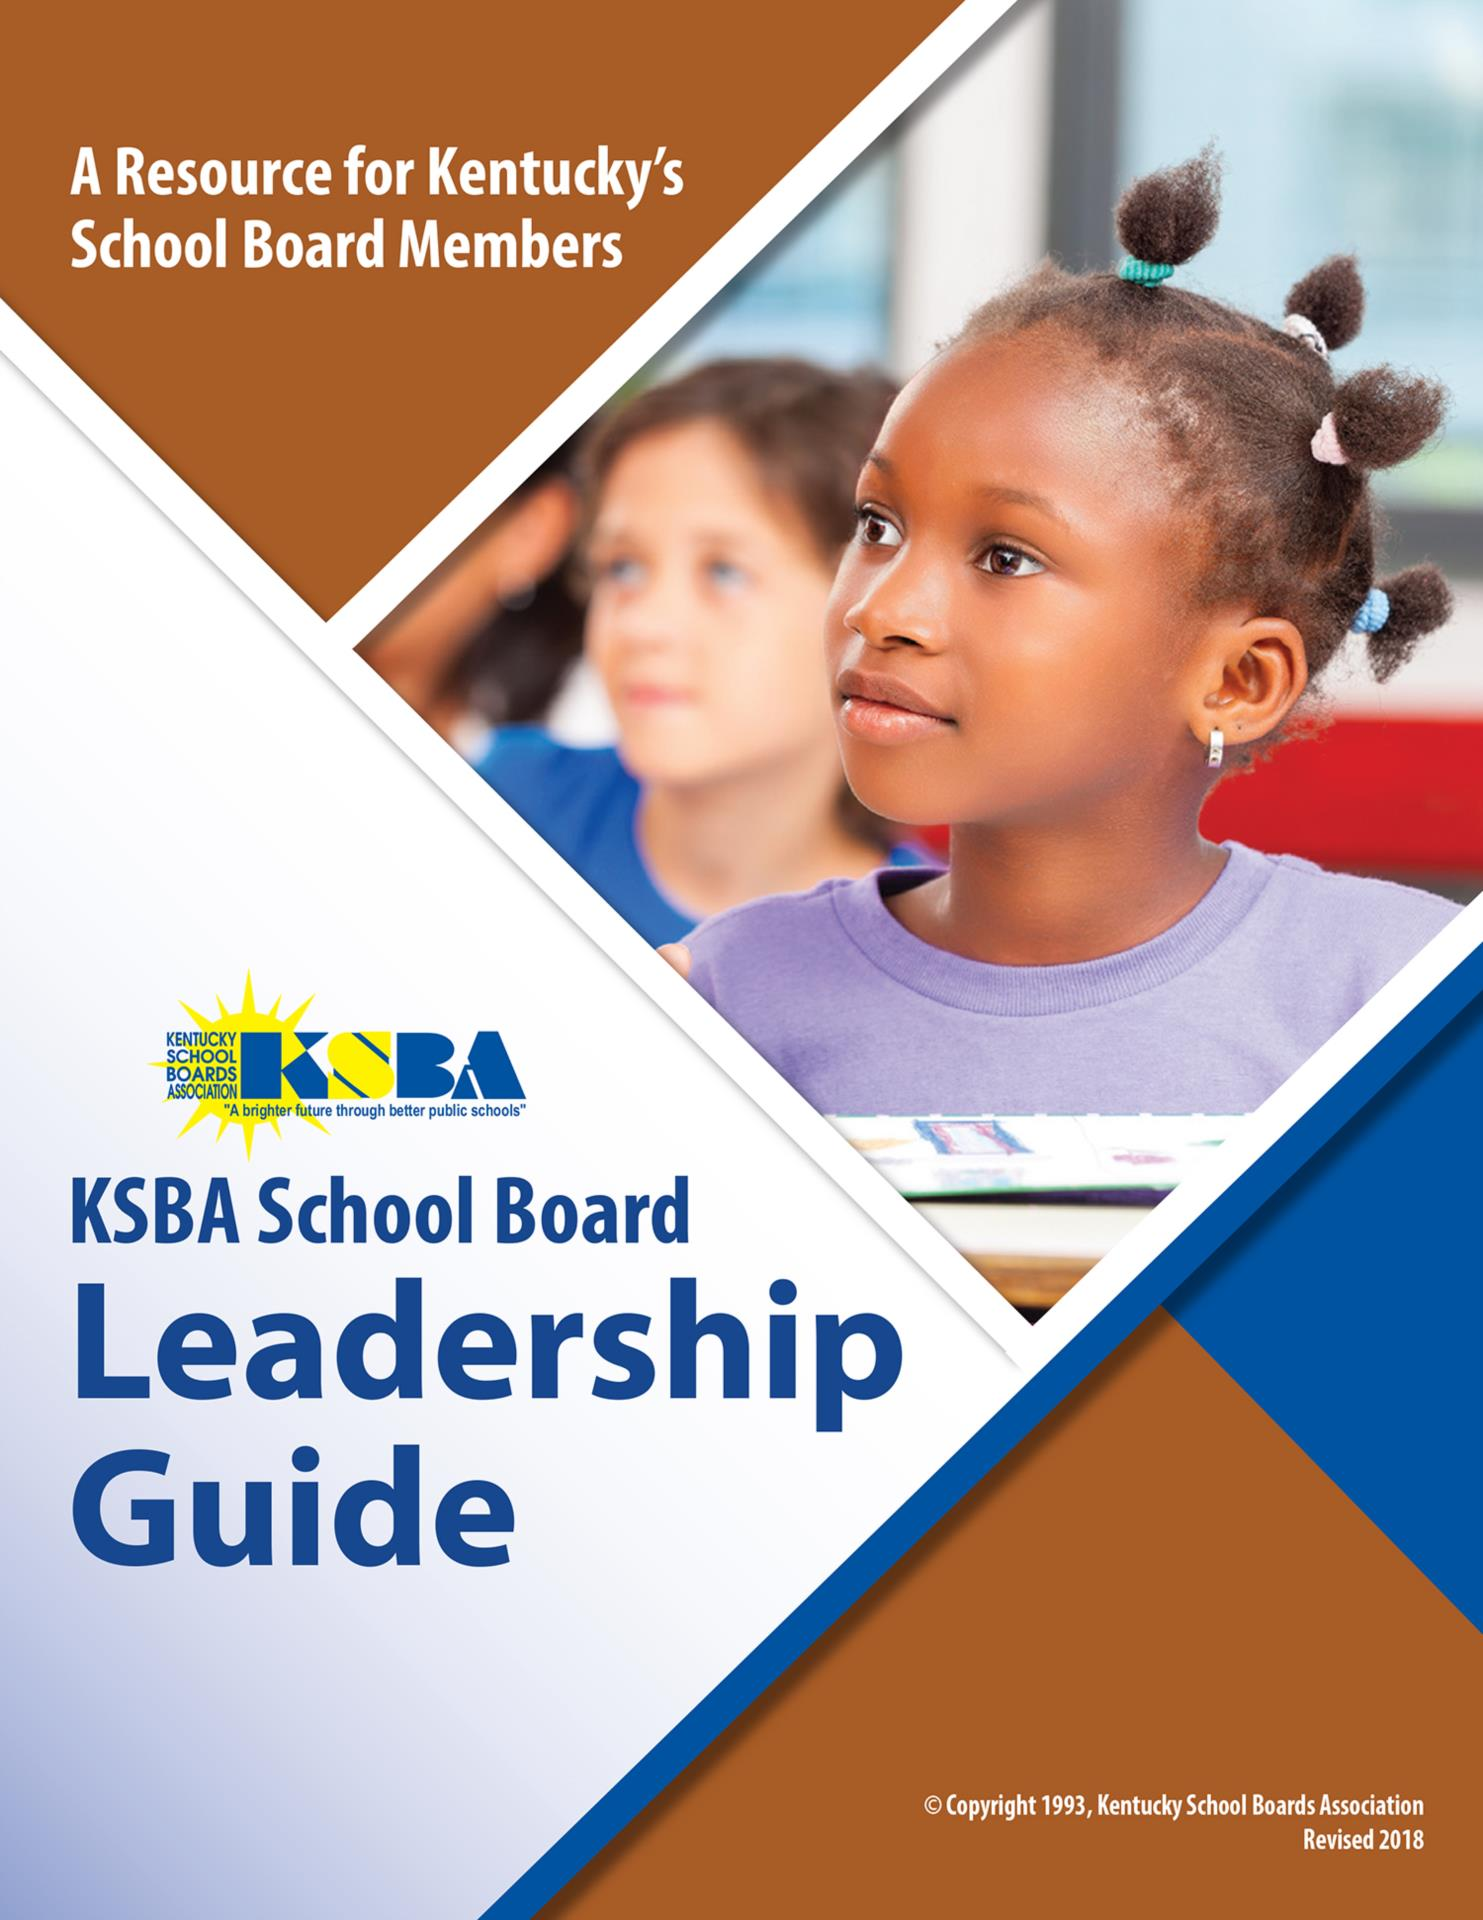 KSBA School Board Leadership Guide